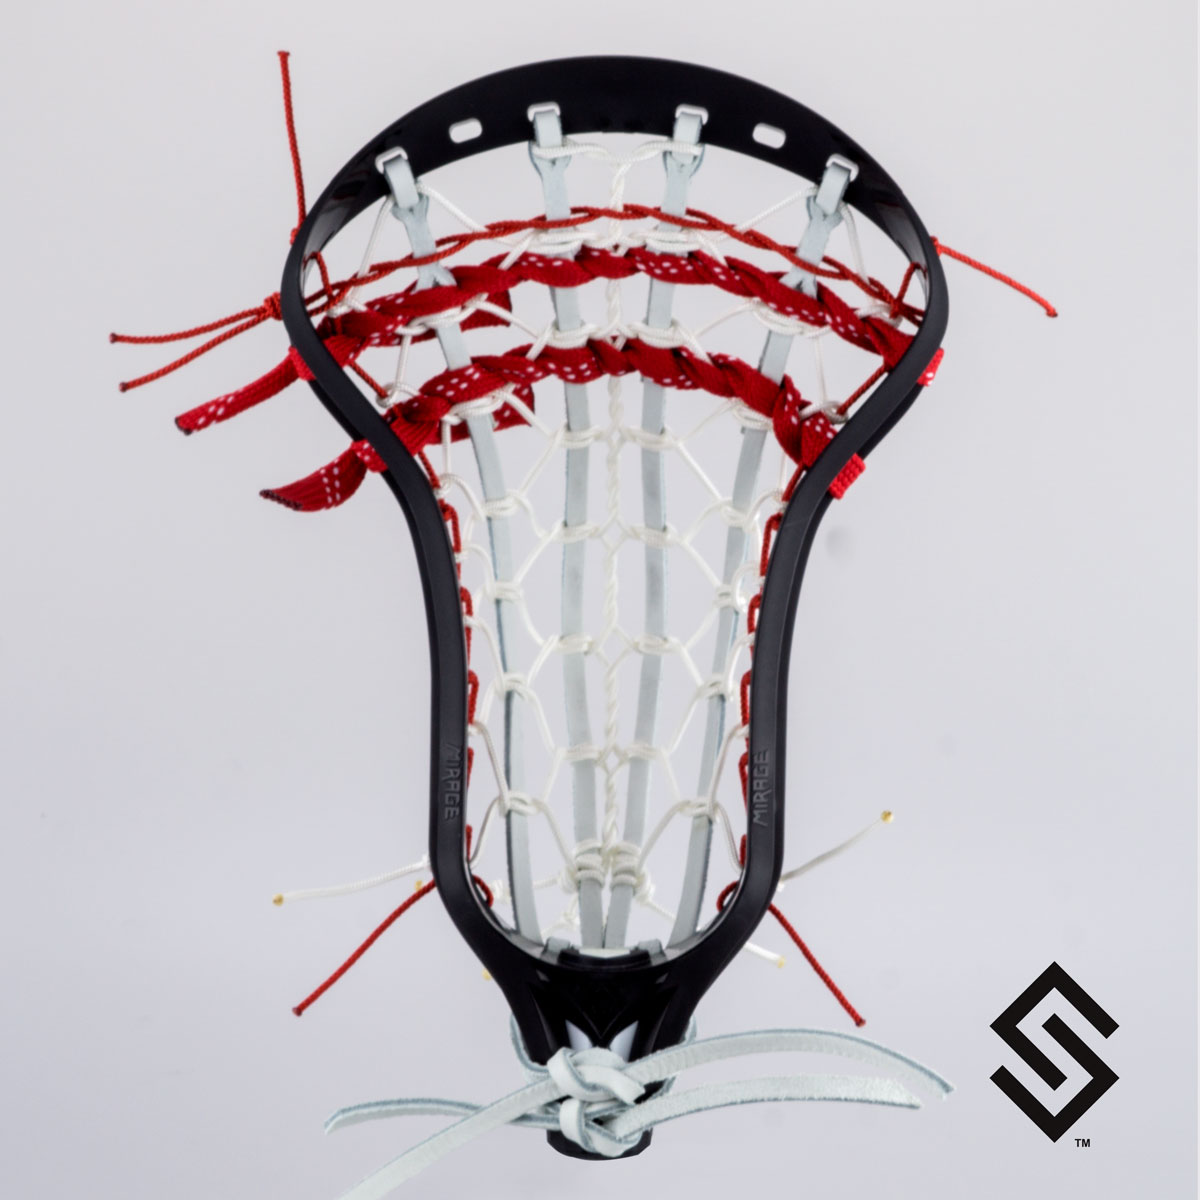 Stylin Strings 2 Color Splatter Lacrosse Dye Job